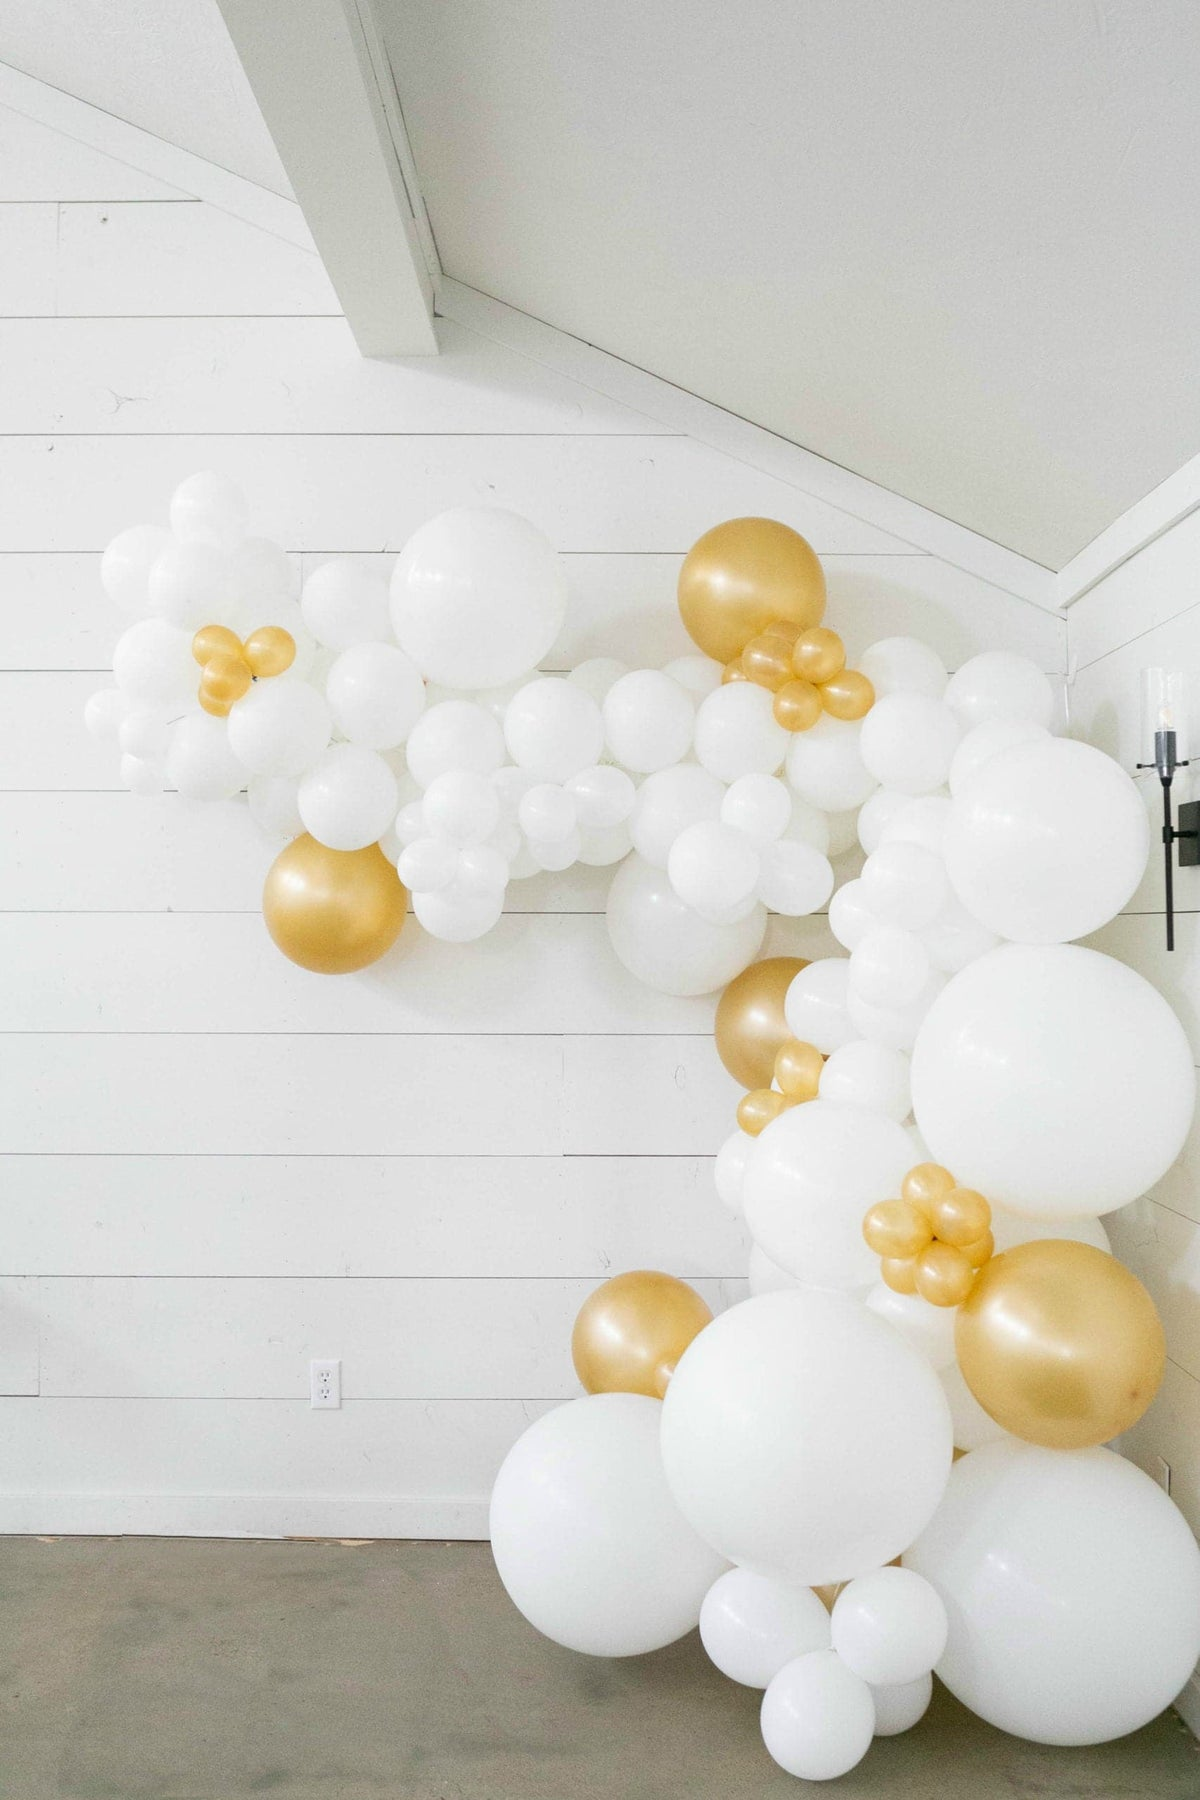 50 Ft Diy Balloon Garland Kit With White Gold Balloons Balloons And Weights